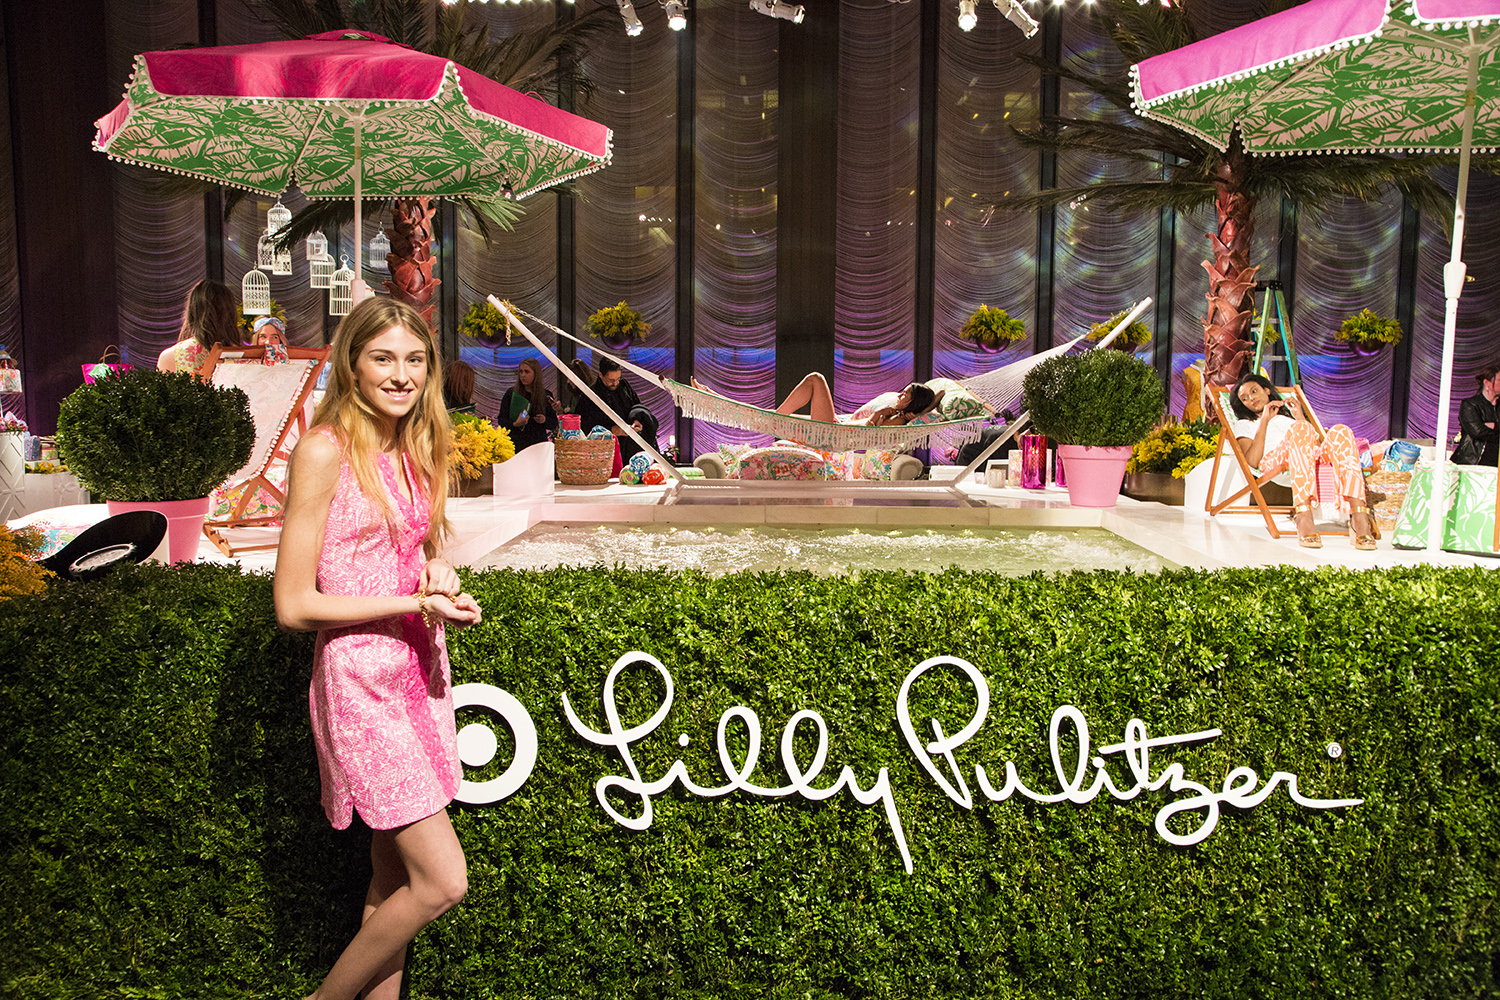 ca18db2119a5fa Why Target's web snafus with Lilly Pulitzer are good news | Fortune